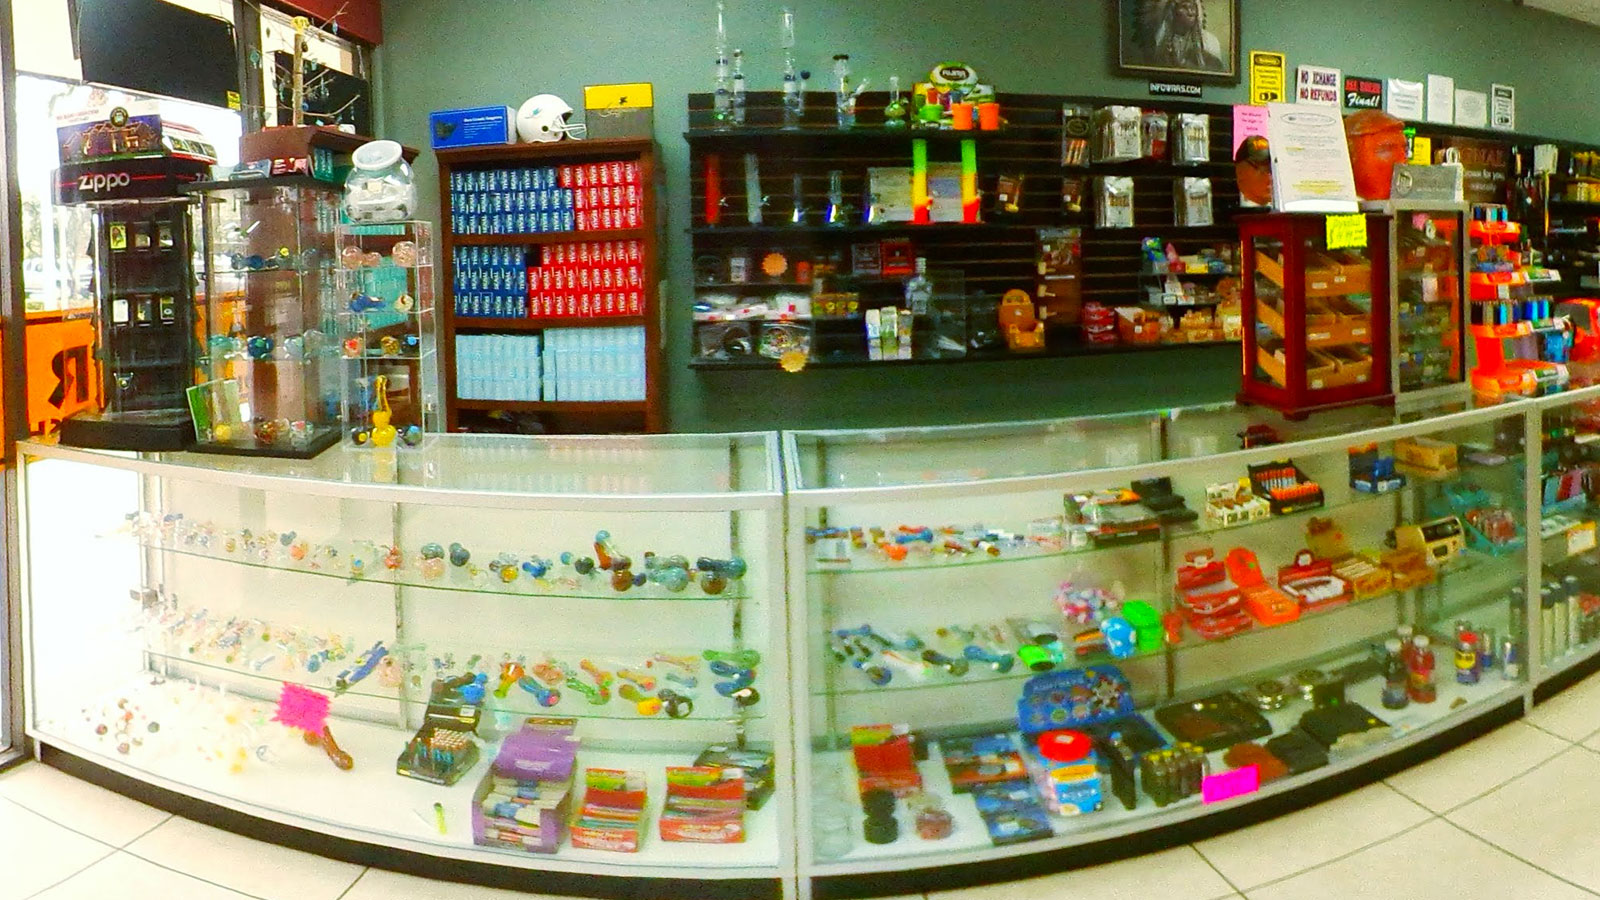 A Larger Selection of Vaporize Products Plus More.